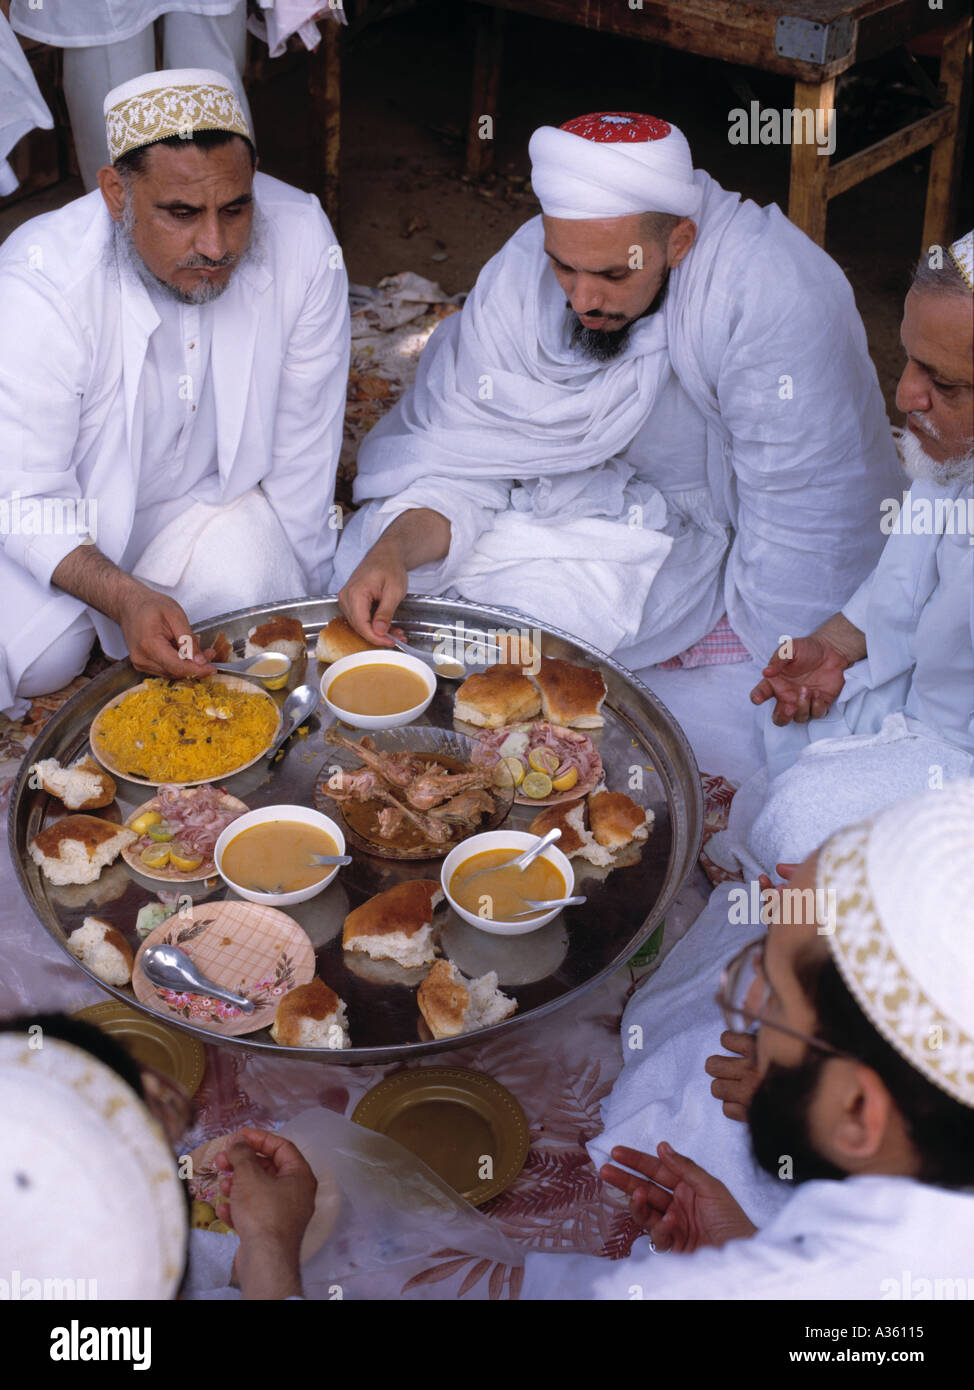 Shiite muslims at their midday festival meal of rice chicken and bread Karachi Pakistan - Stock Image